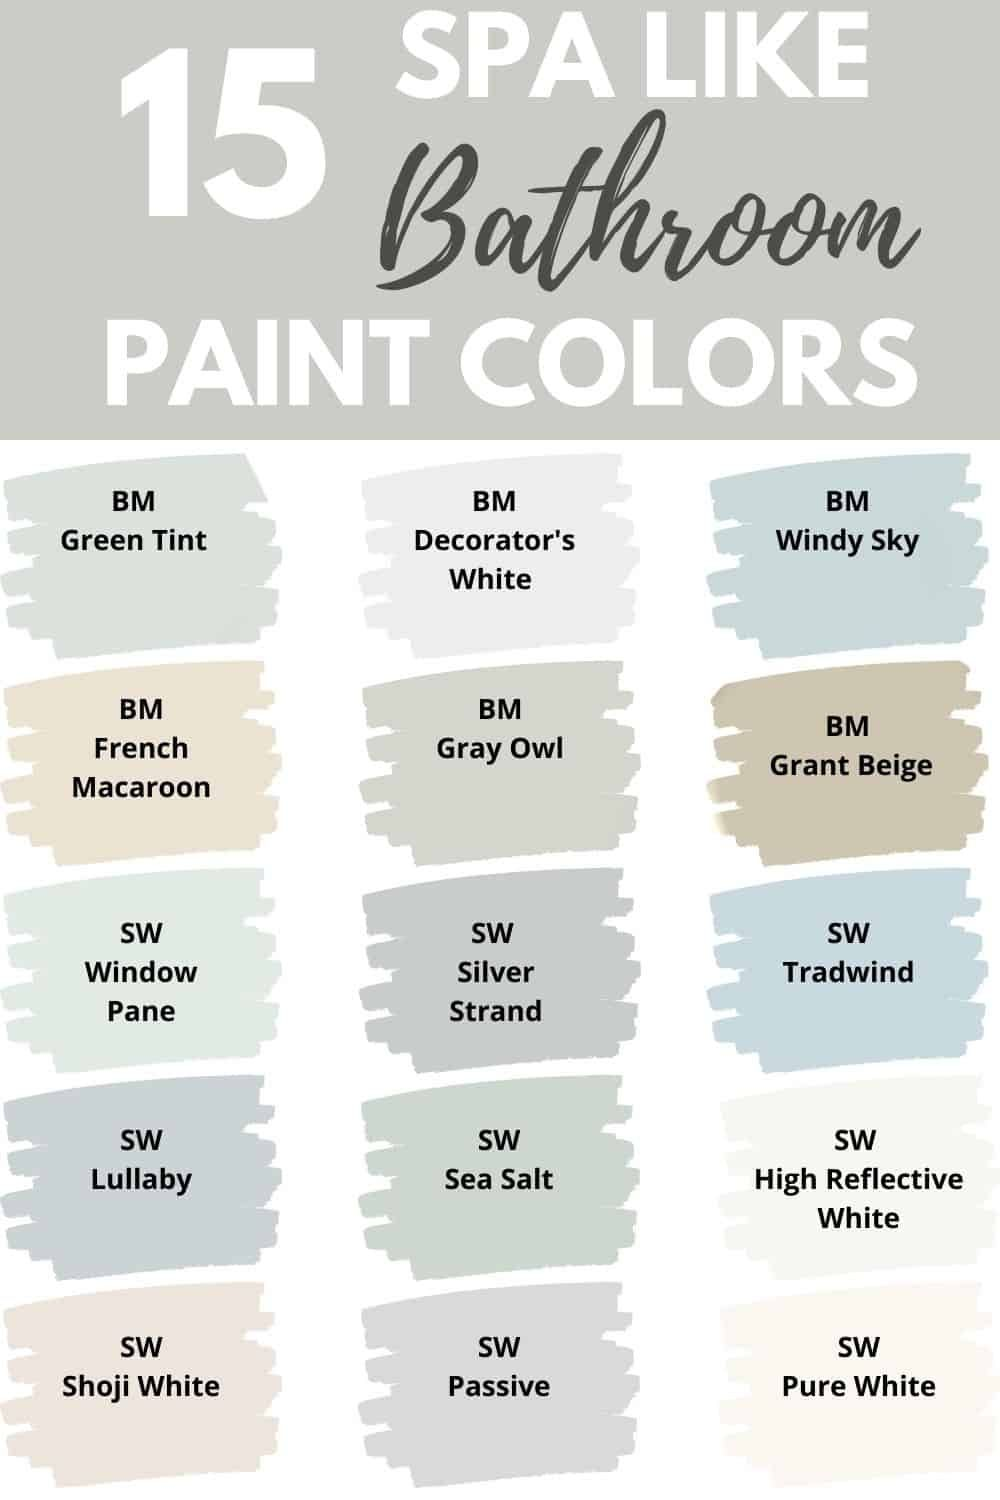 Spa Like Paint Colors For Bathrooms In 2020 Small Bathroom Colors Painting Bathroom Bathroom Paint Colors